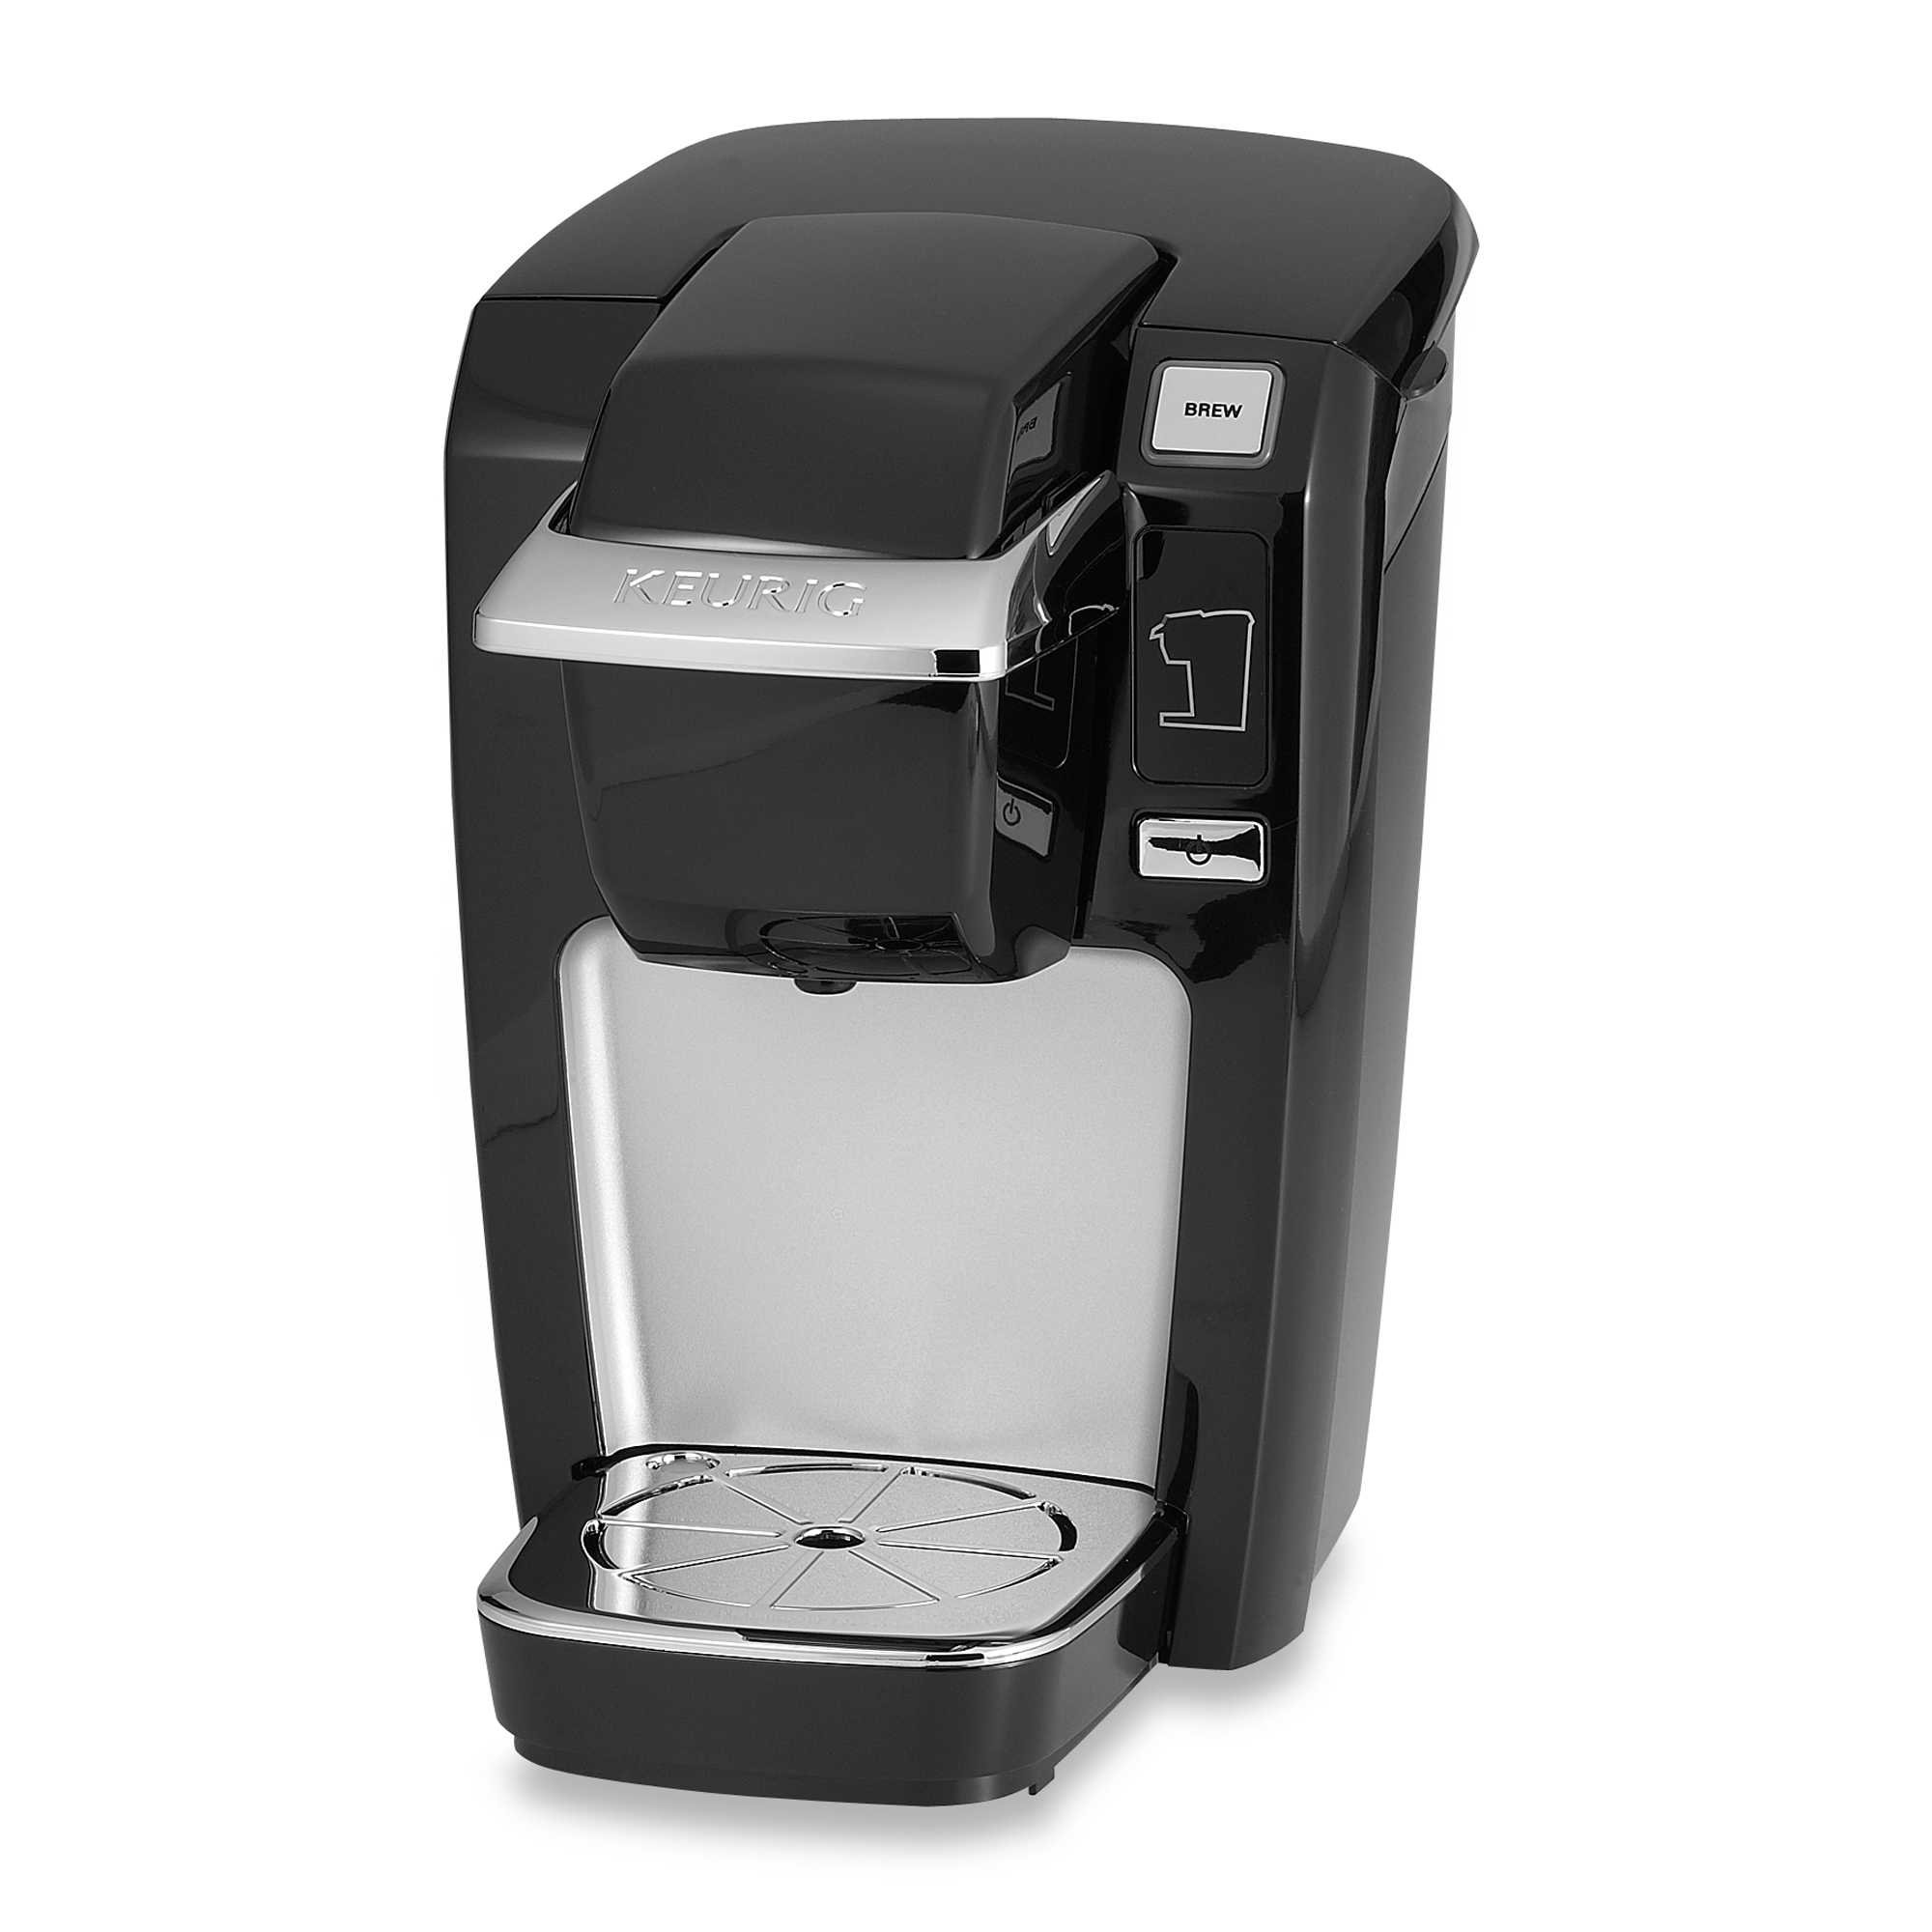 Compact Design Keurig® K10/K15 Brewing System Perfect for smaller spaces, dorms, offices, or vacation homes (Black)